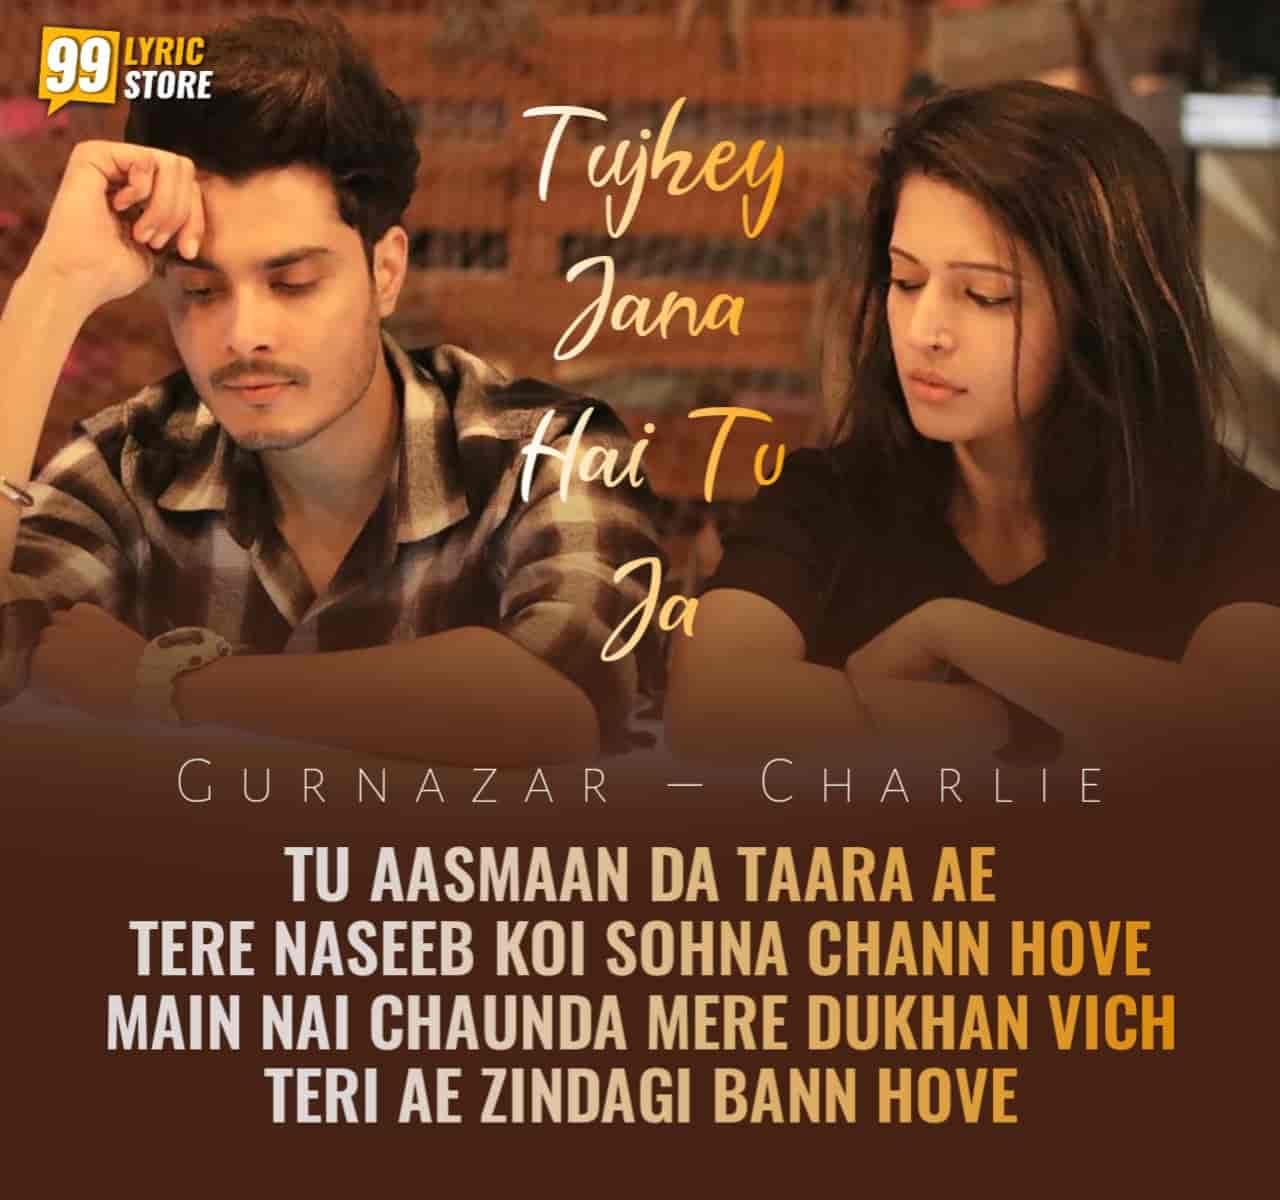 new beautiful shayari which is titled 'Tujhey Jana Hai Tu Ja' has released vocals by them. Charlie and Gurnazar both have penned this shayari lyrics and performed also in this shayari video